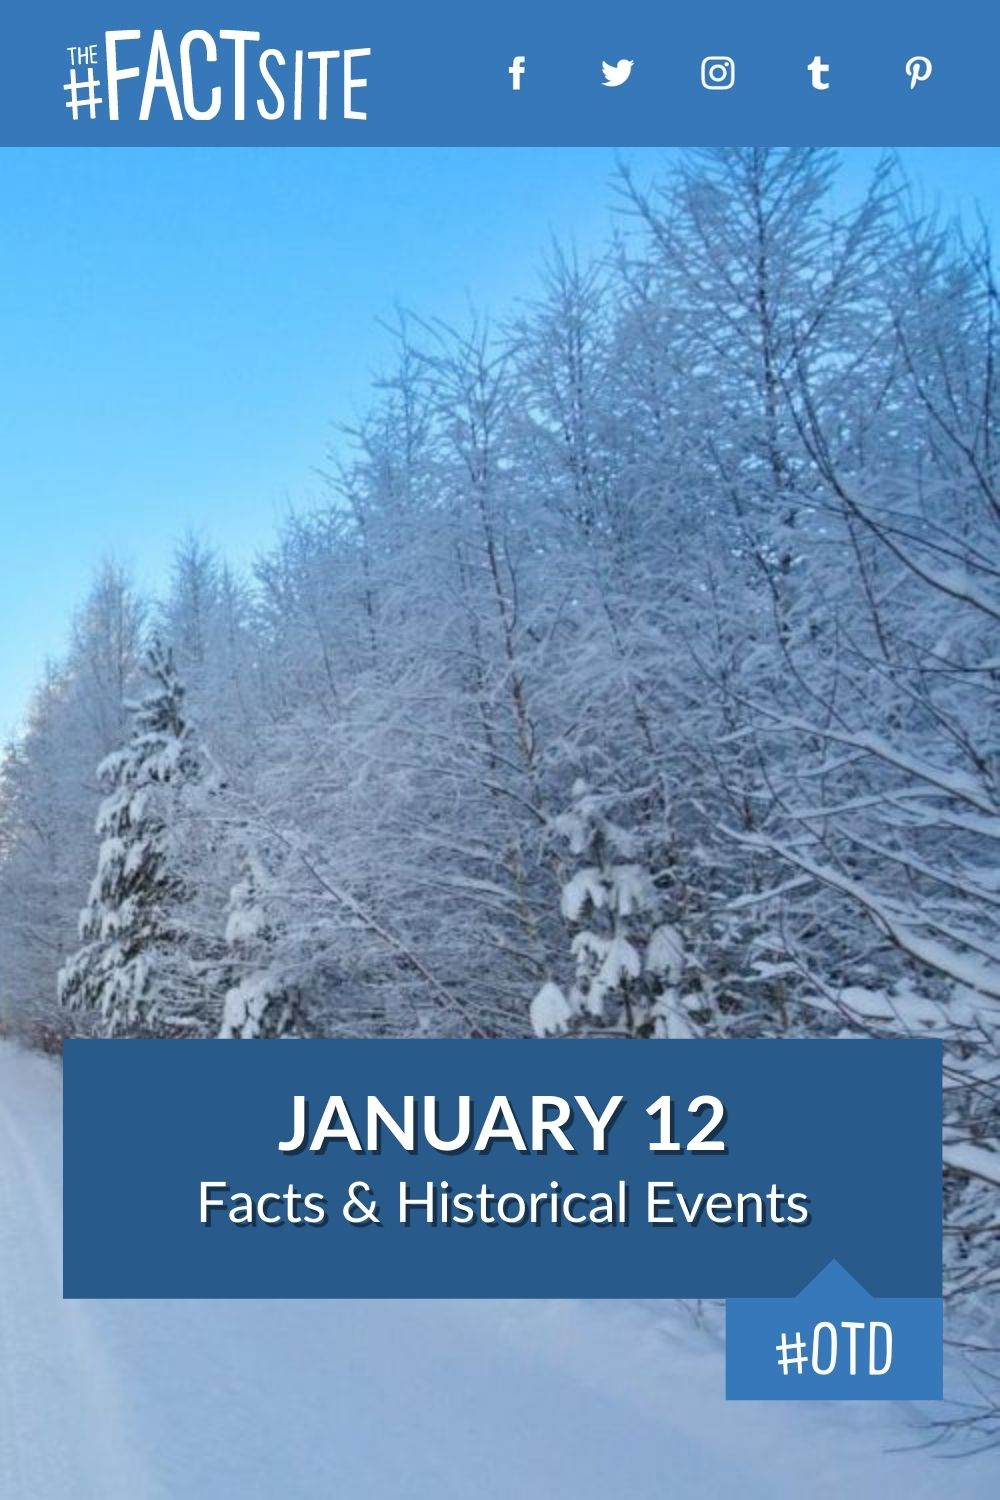 Facts & Historic Events That Happened on January 12